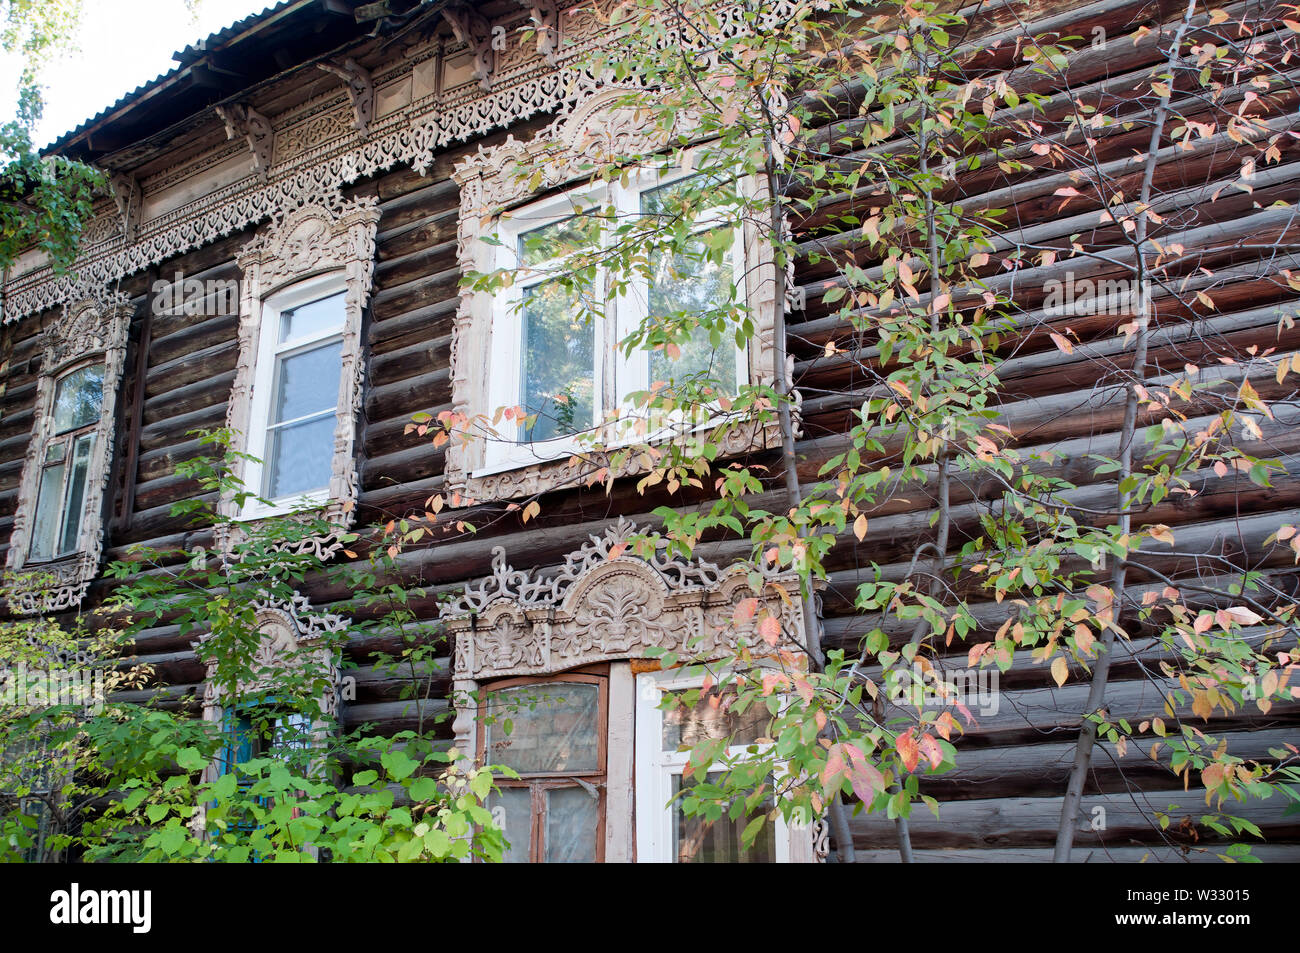 Tomsk Russia, Traditional lace windows decorating a log ...